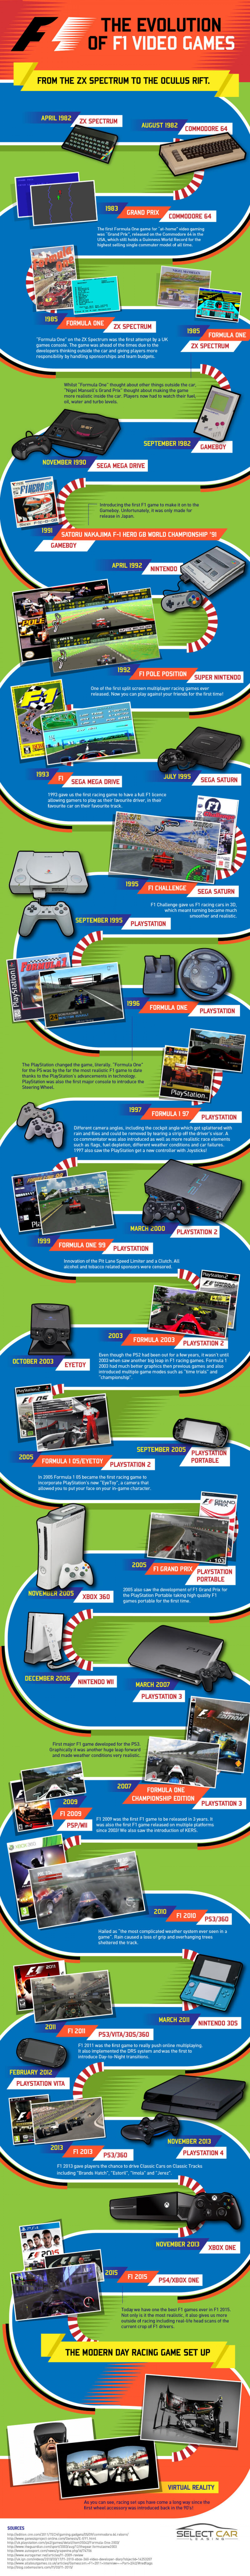 The Evolution Of F1 Video Games Infographic